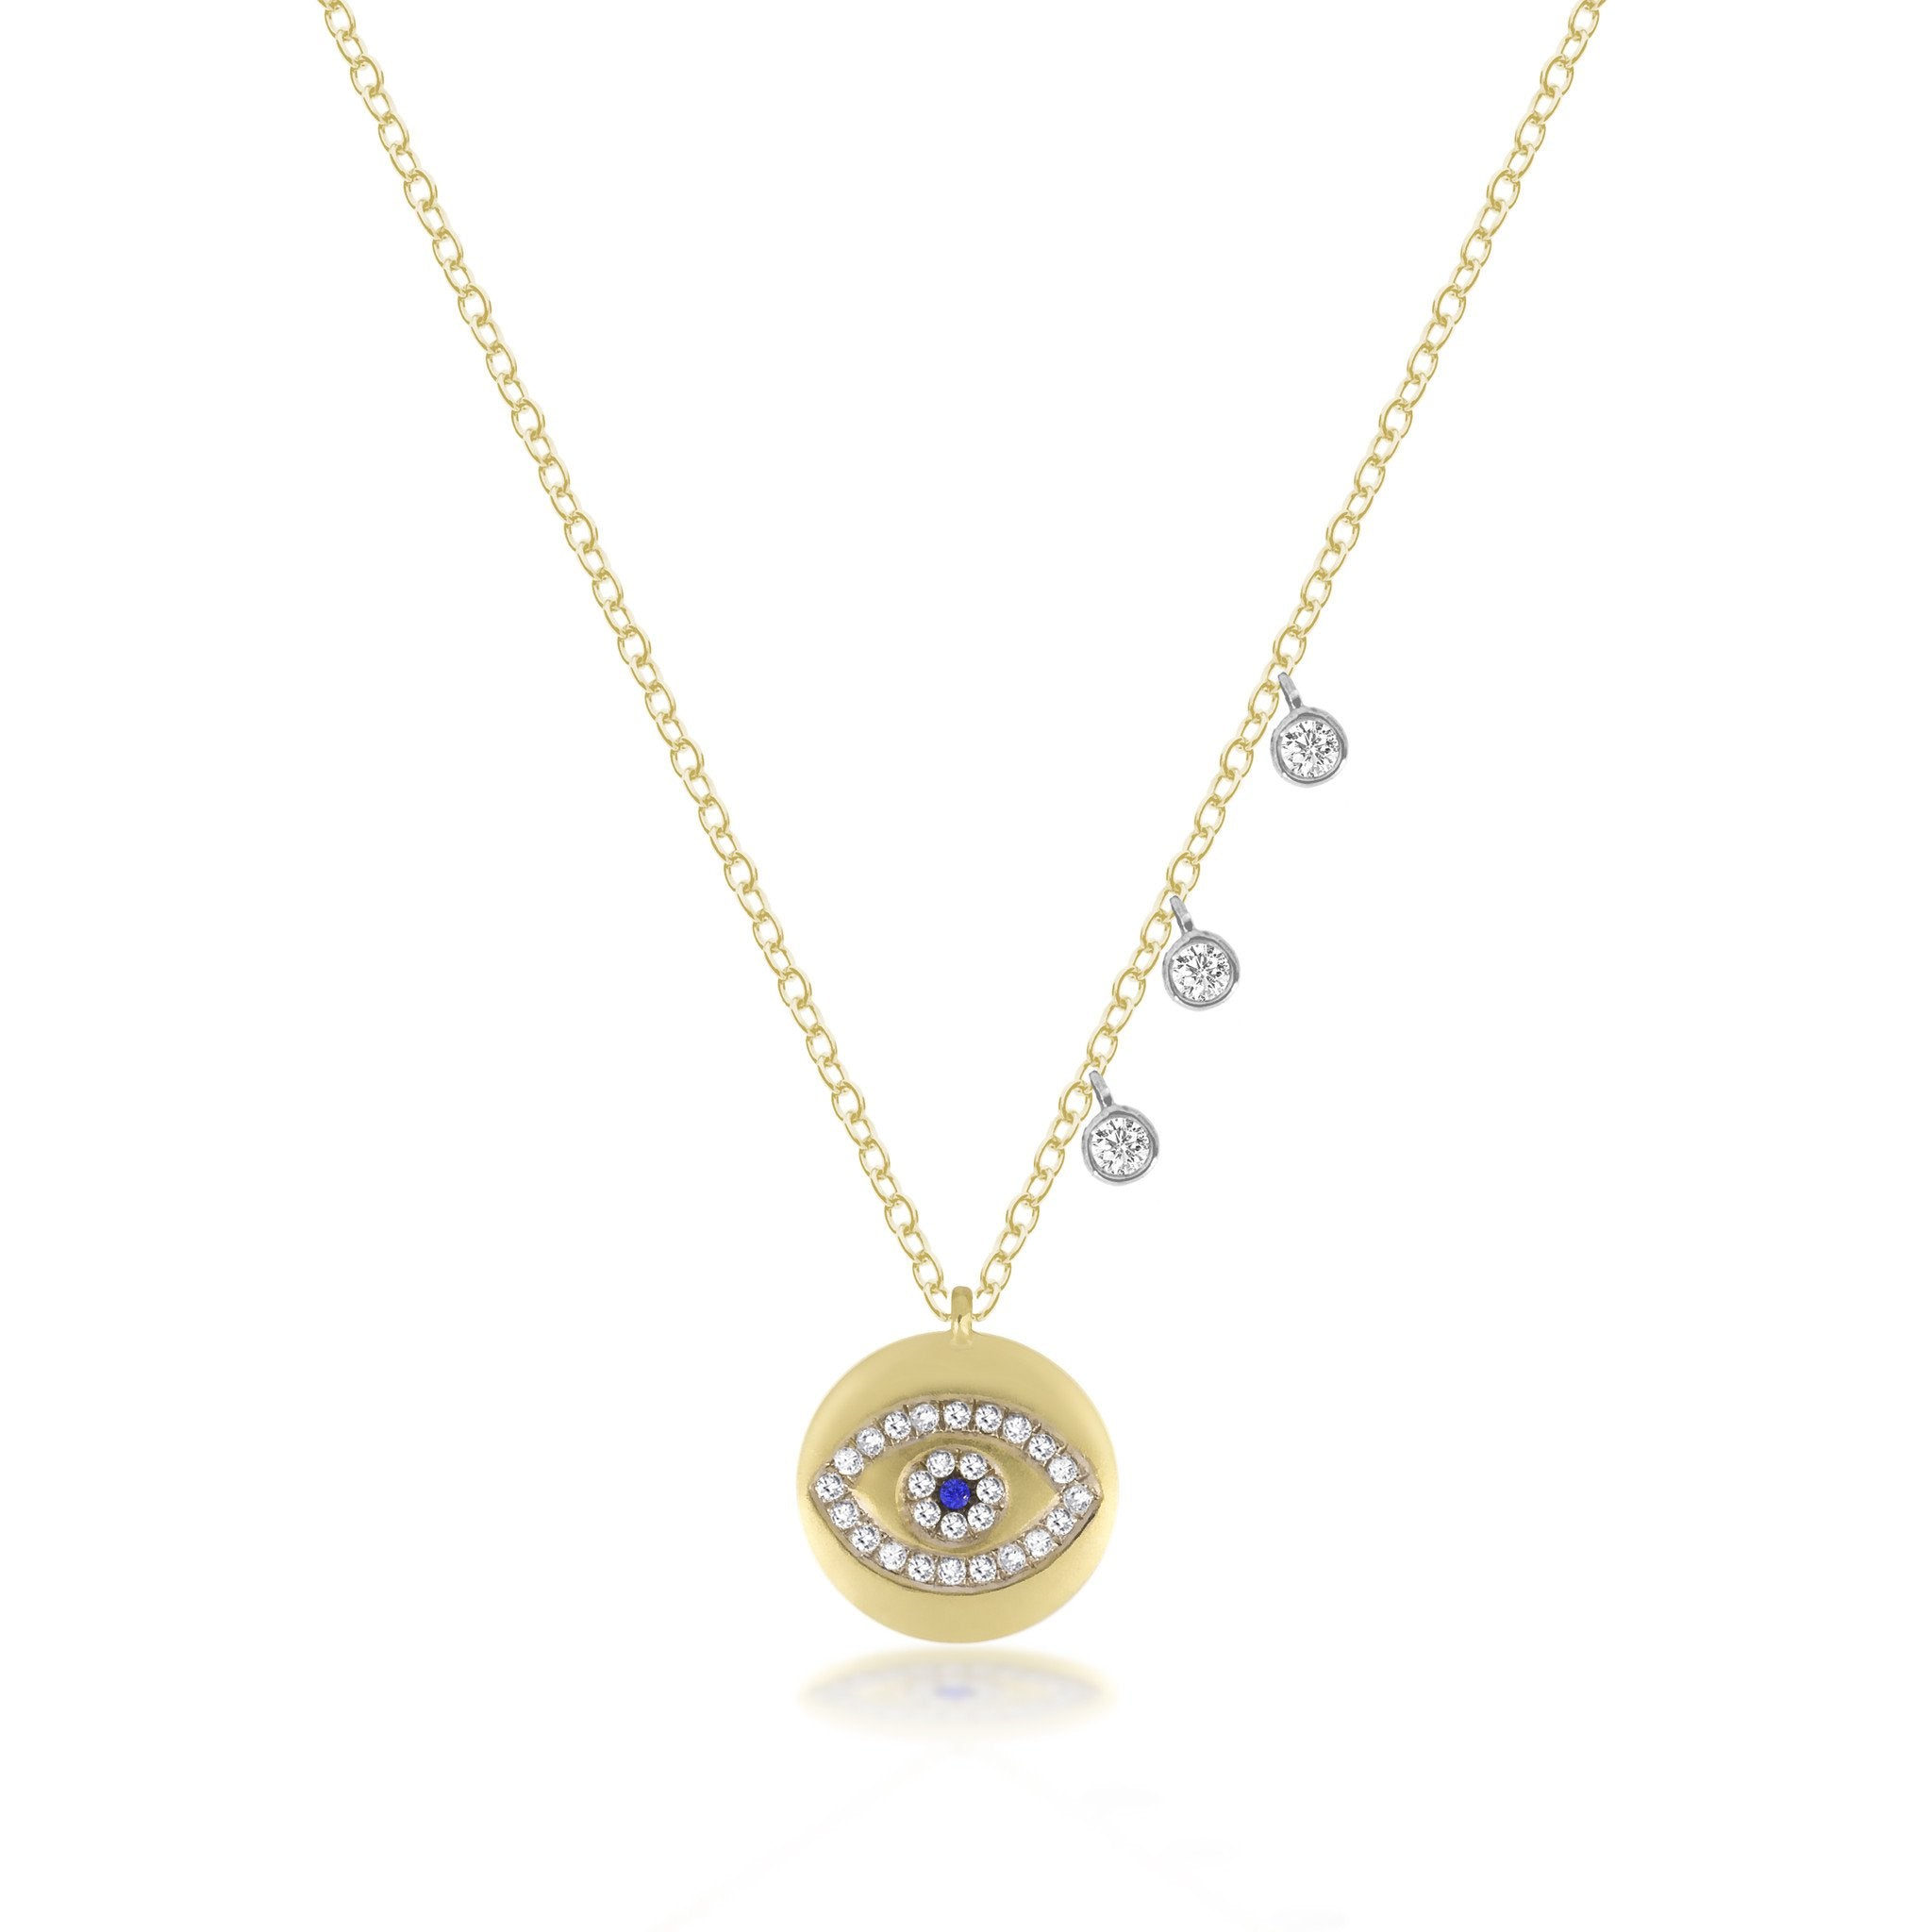 19a1b3fdd Meira T Evil Eye 14K Yellow Gold Necklace with Diamonds 1N7521/YG ...